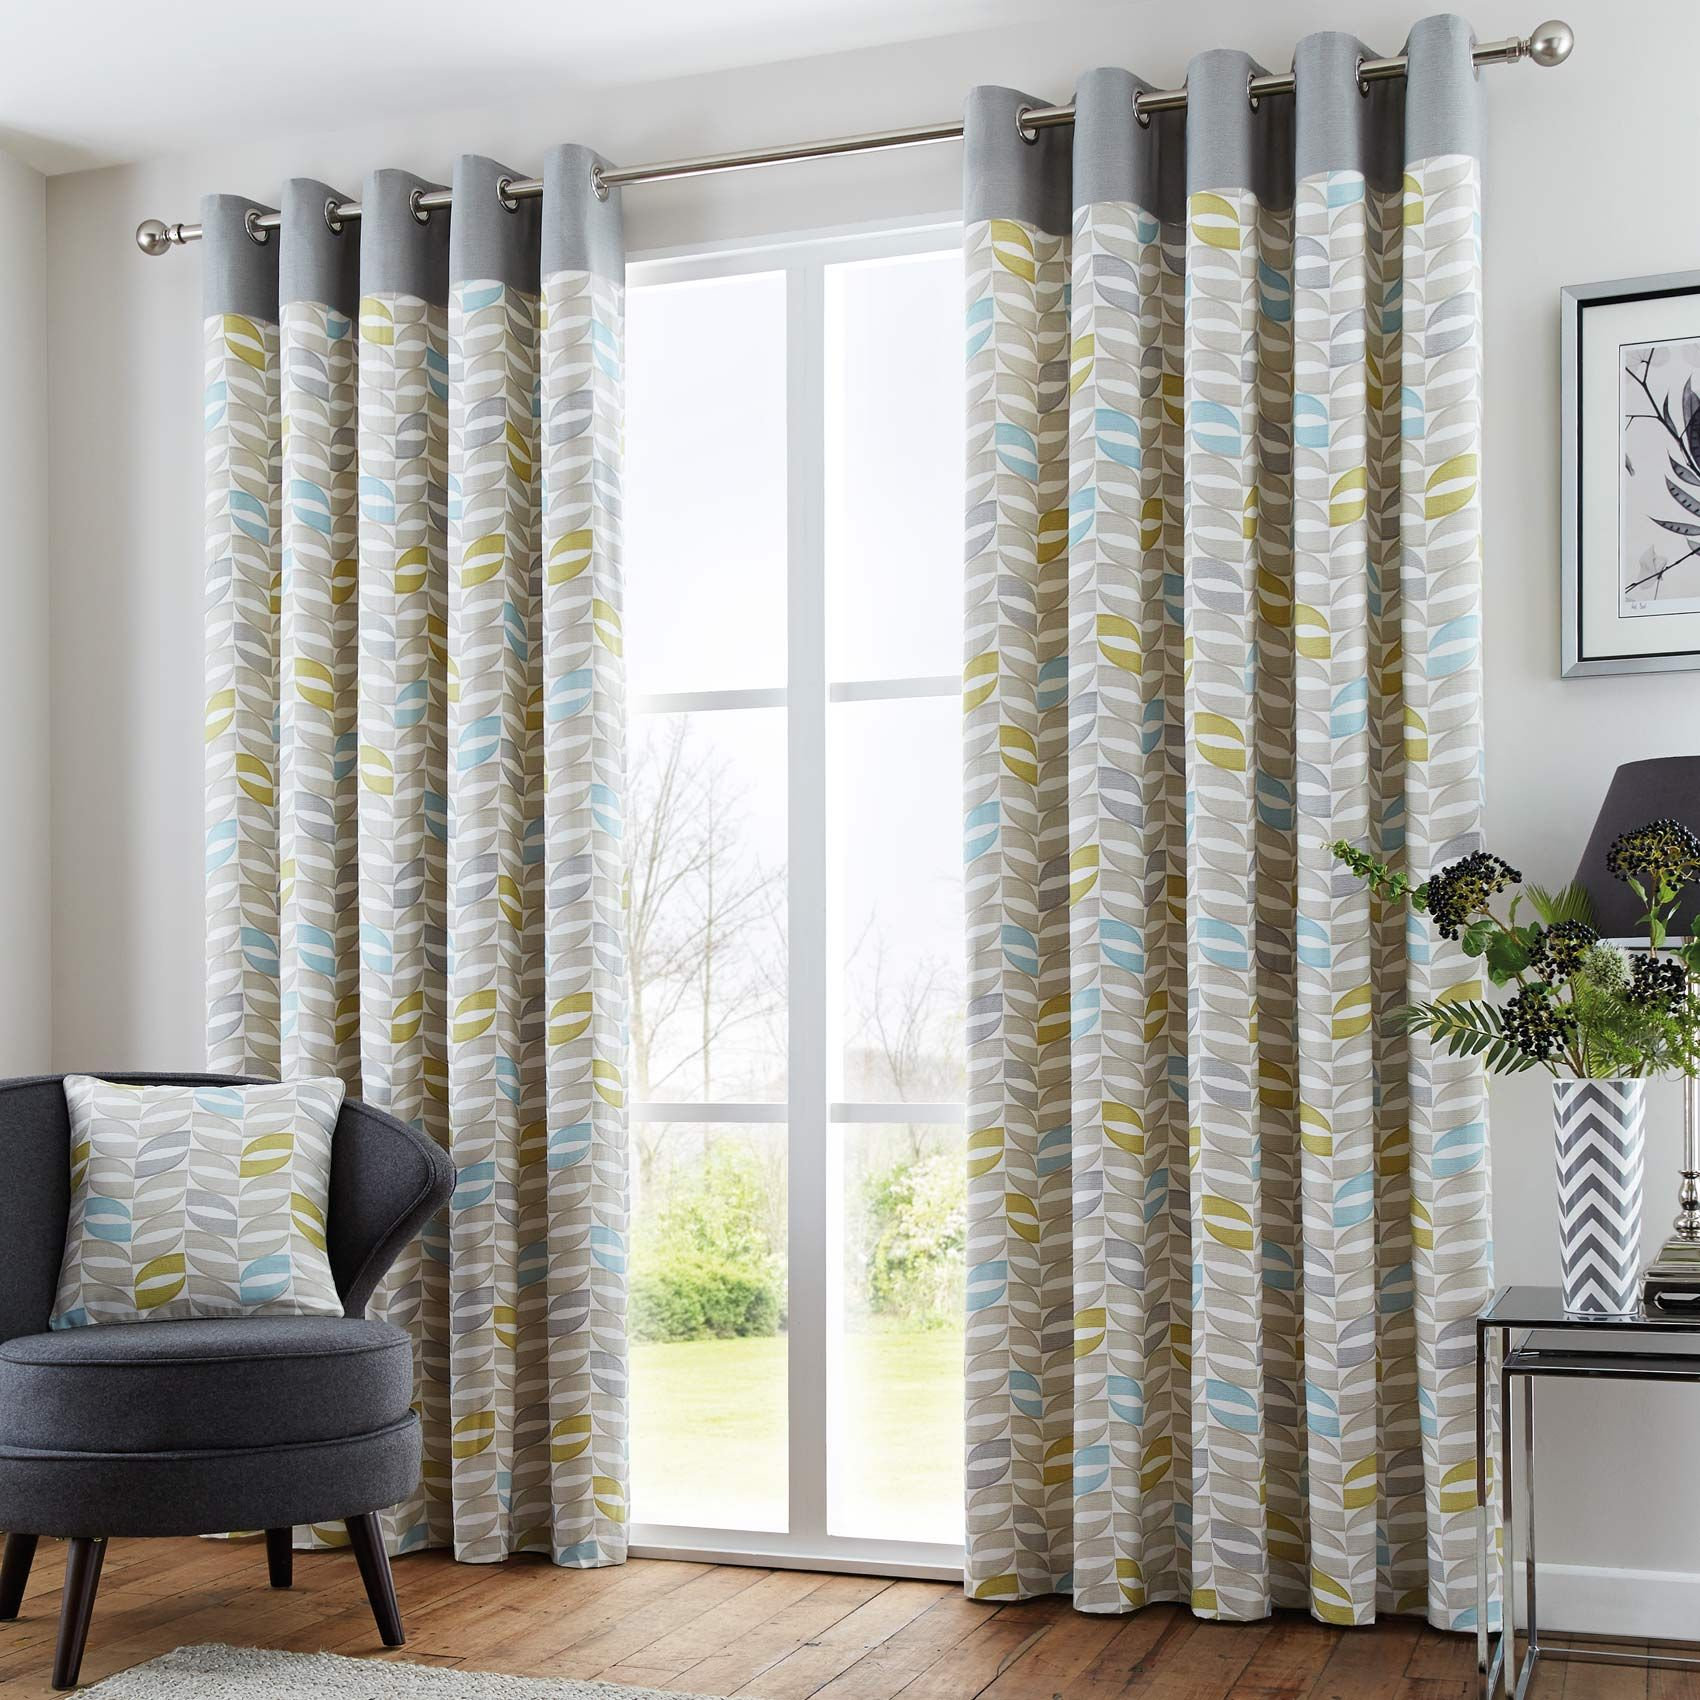 Flat panel curtains - Copeland Geometric Modern Eyelet Curtains Grey Duck Egg Green